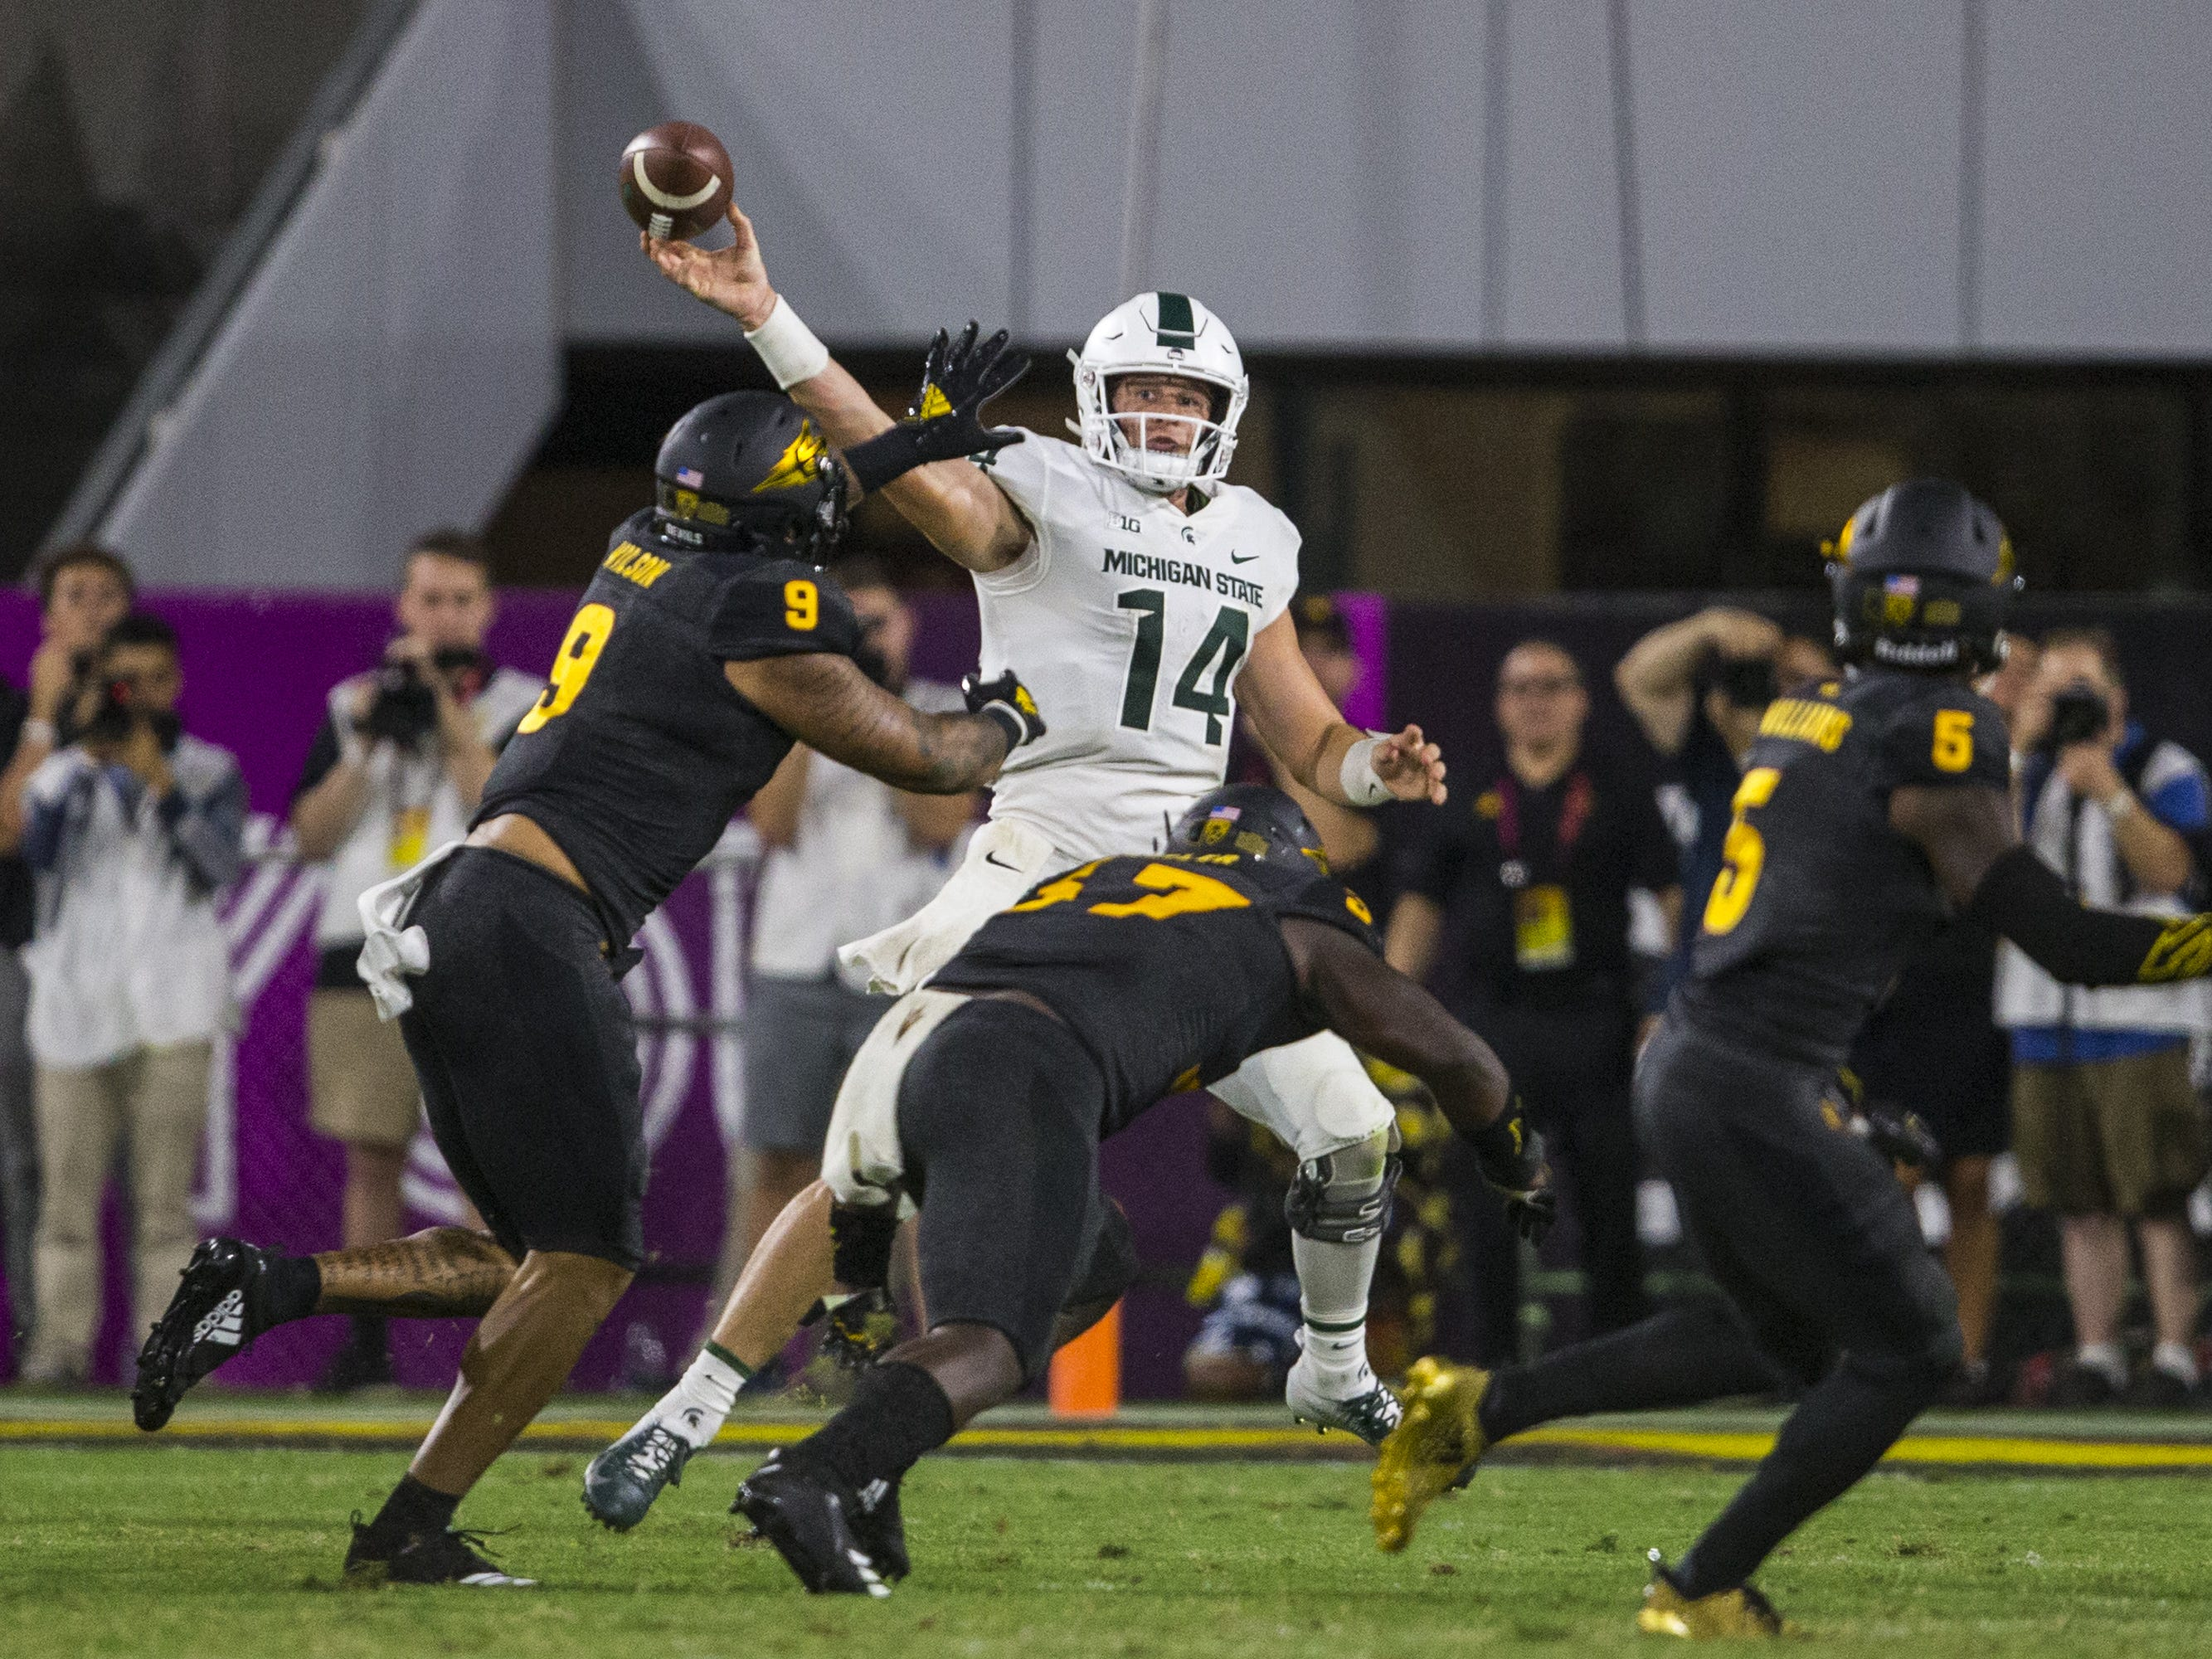 Michigan State's Brian Lewerke looks to pass against Arizona State in the 4th quarter on Saturday, Sept. 8, 2018, at Sun Devil Stadium in Tempe, Ariz. Arizona State won, 16-13.